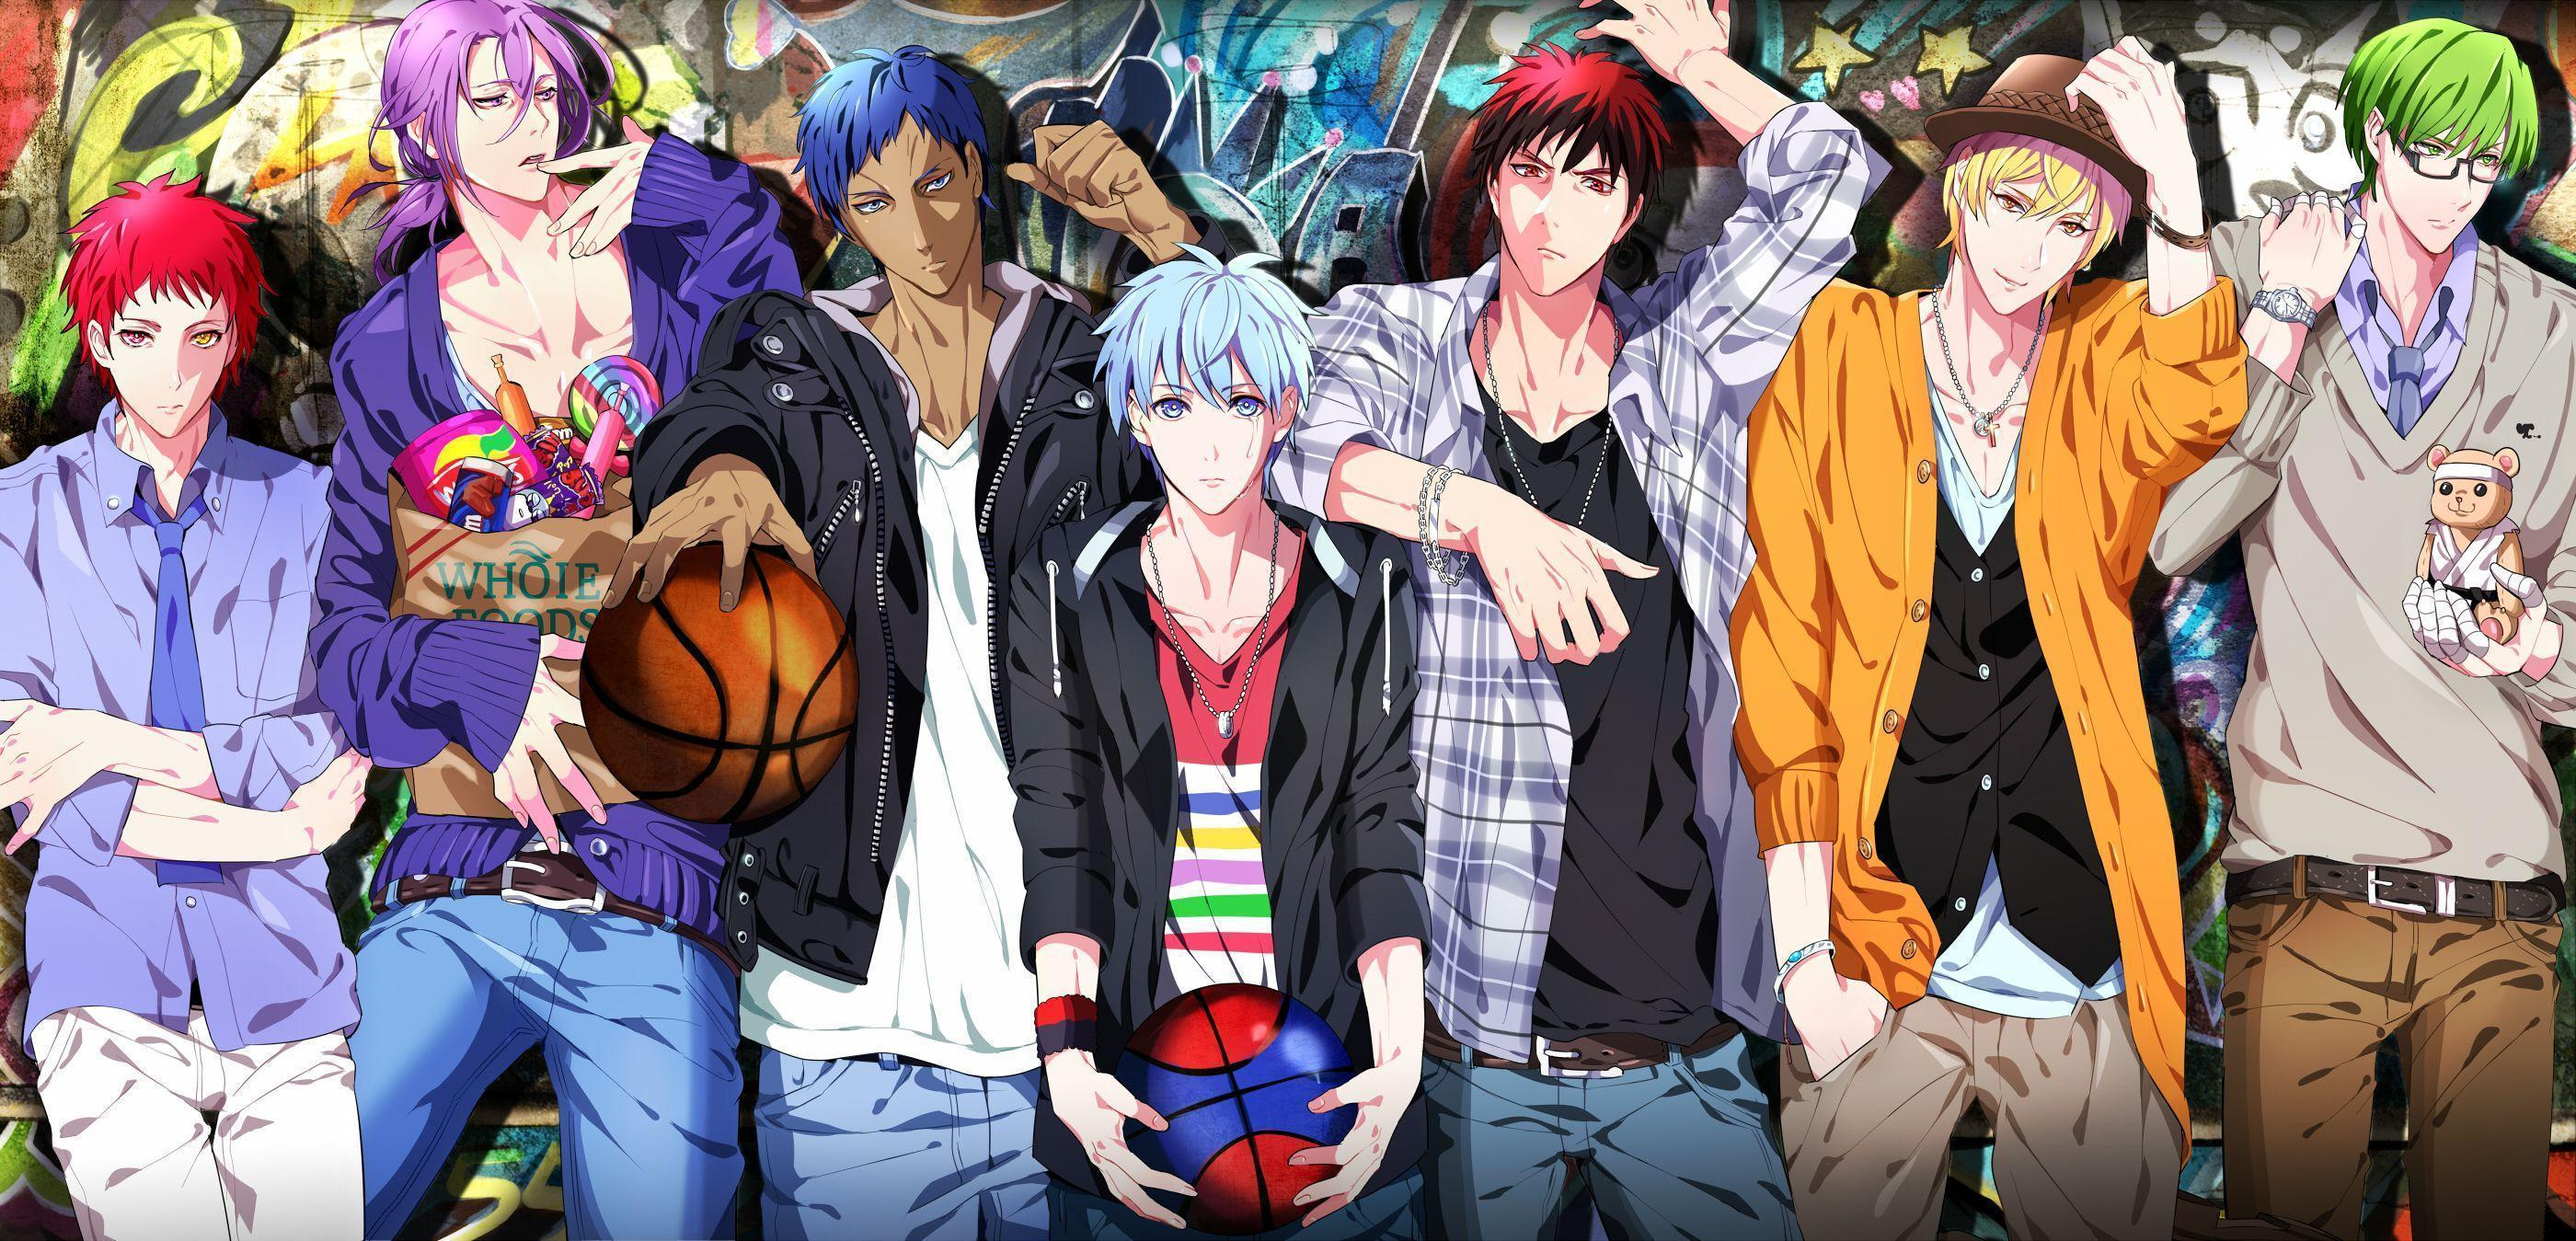 5 7 Anime Characters : Kuroko no basuke wallpapers wallpaper cave